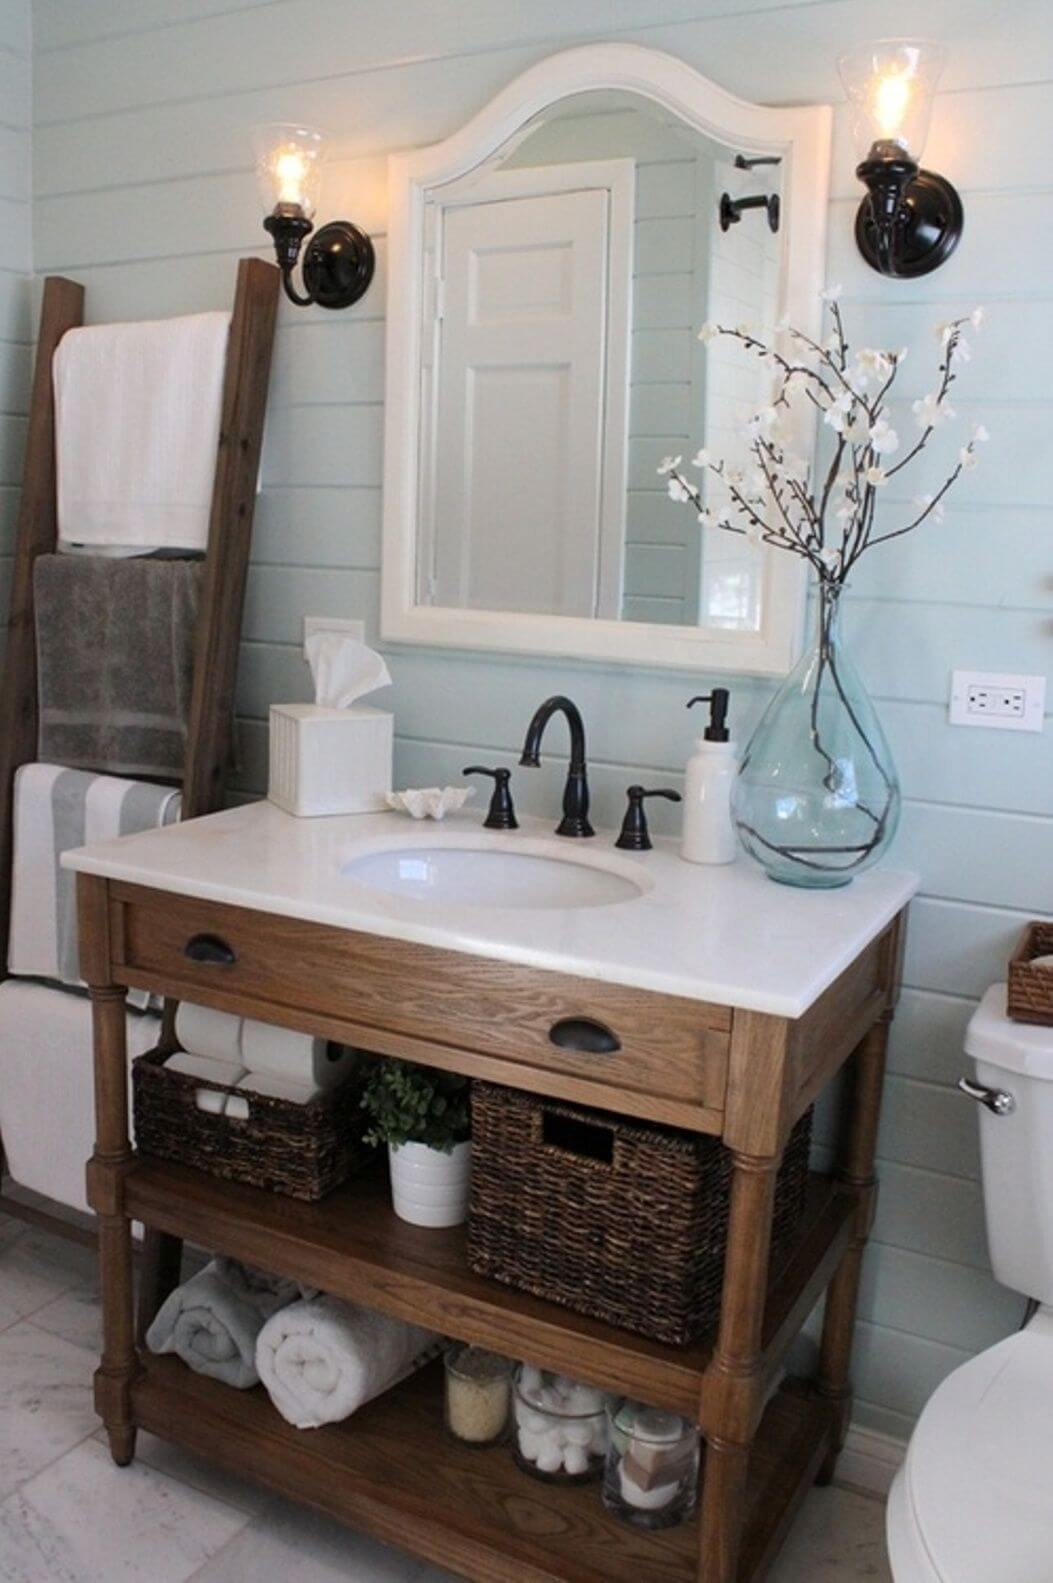 32 Best Small Bathroom Design Ideas and Decorations for 2019 Ice Blue Tiles Bathroom Designs on blue tile bathroom tub, blue painting designs, blue bathroom decoration, blue and green bathroom, blue bathroom faucets, blue and white bathroom designs, blue spa paint, blue bathroom flooring, blue pool tile designs, shower black and white designs, blue glass designs, blue farmhouse bathroom, blue and white tile texture, blue tile bathroom remodel, blue bathroom cleaner, blue bathroom subway tile, blue glass subway tile, blue floor designs, blue glass tile bathroom, blue small bathroom design,